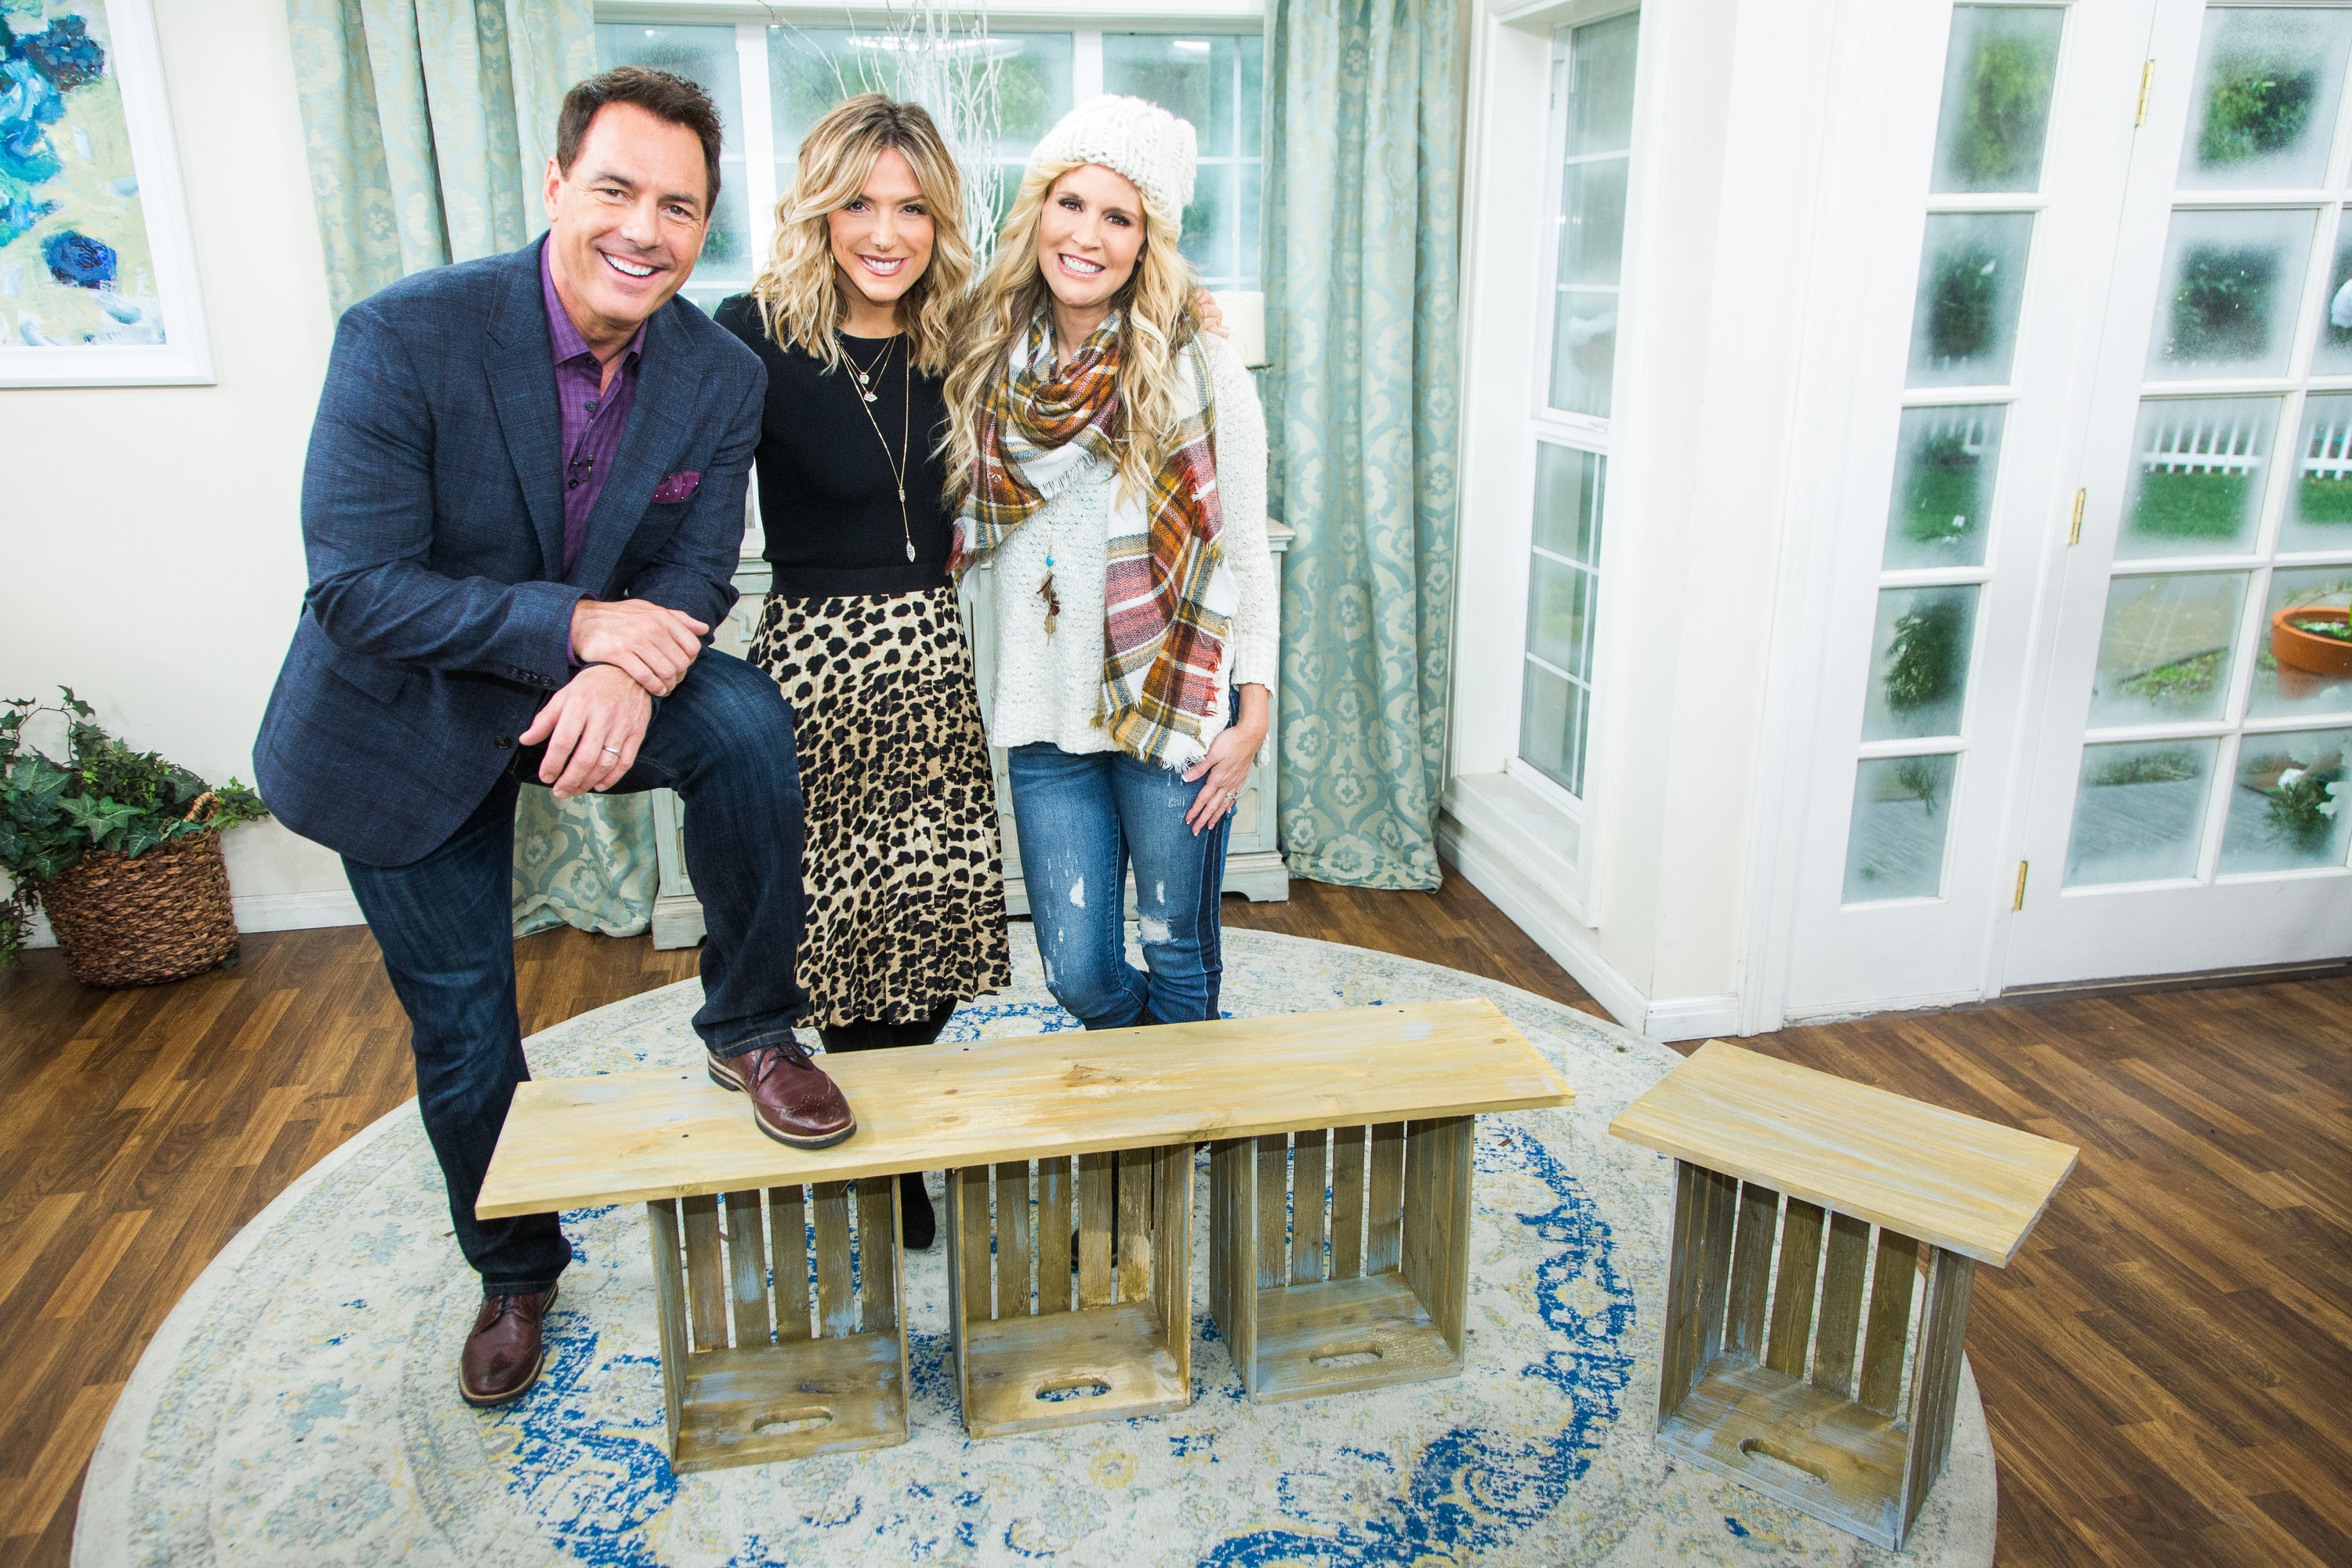 Diy Crate Bench Home Family Video Hallmark Channel